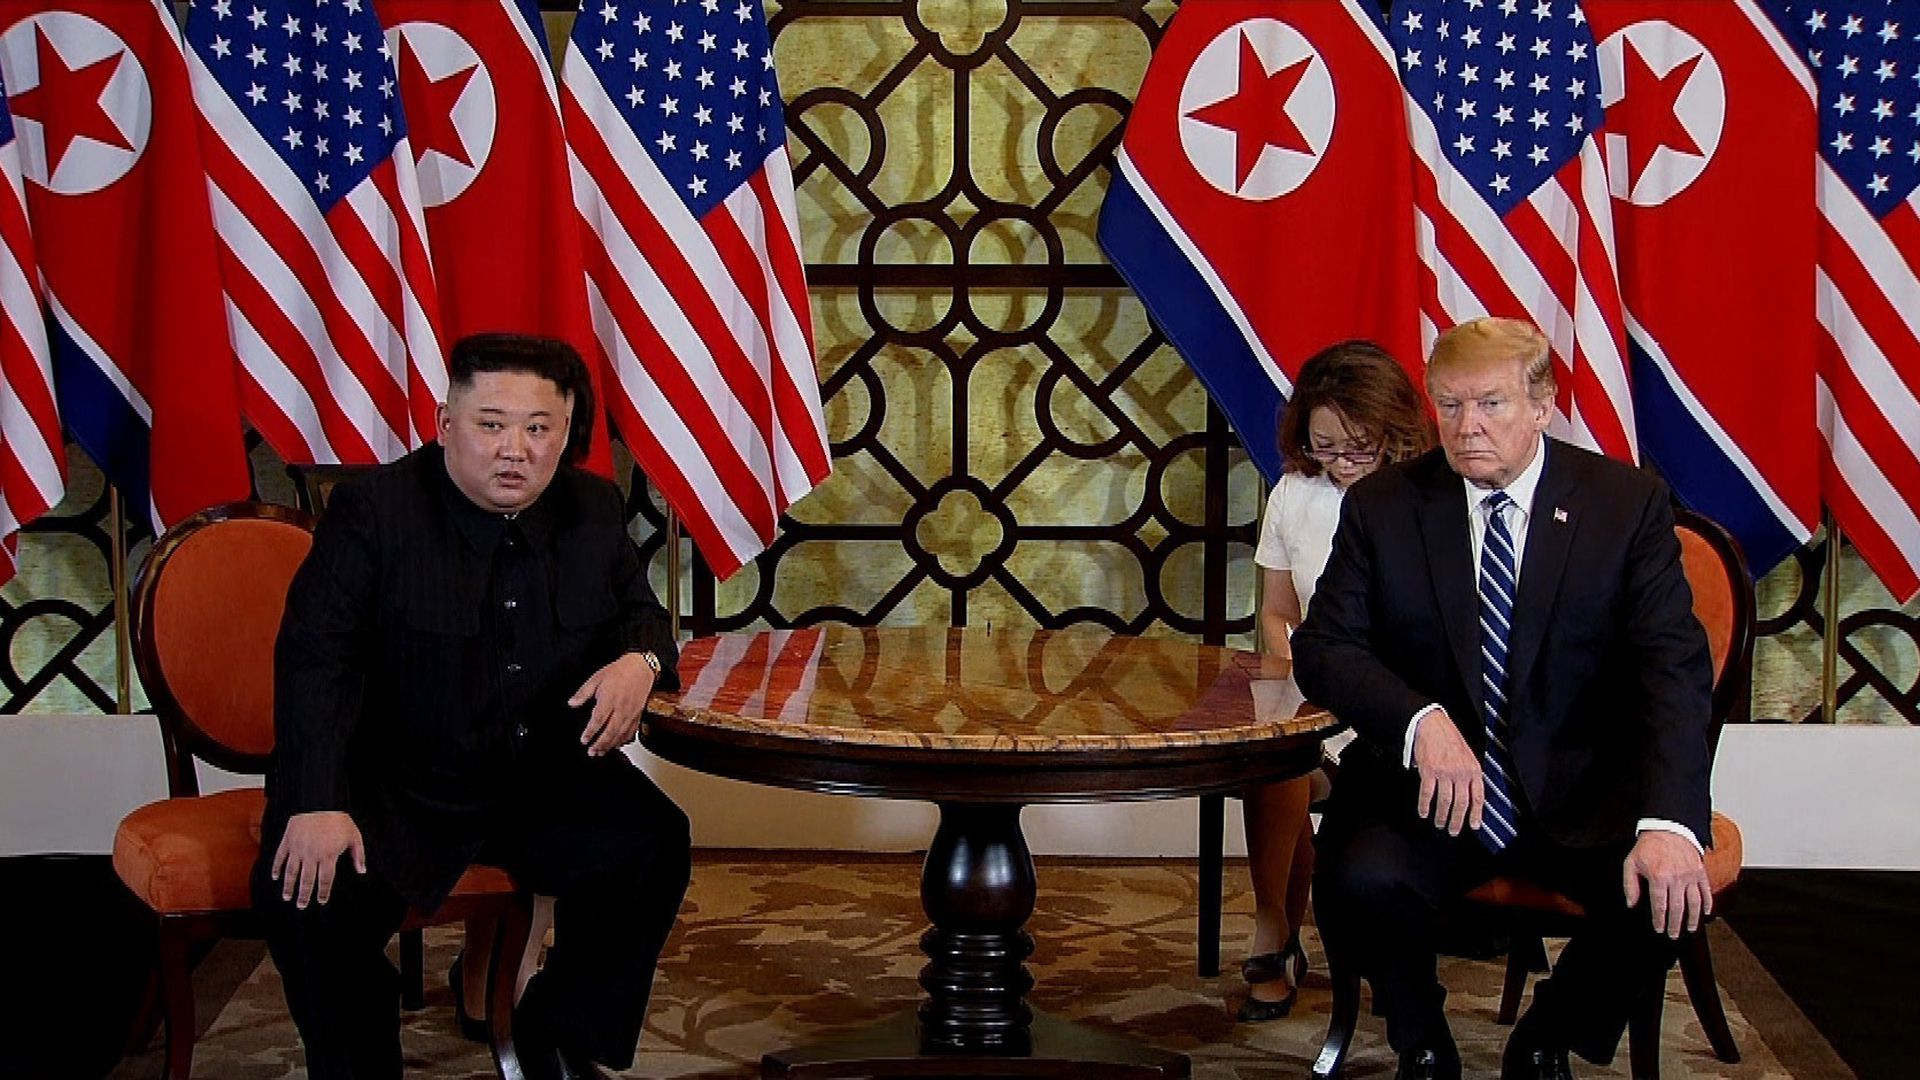 In this image, Donald Trump and Kim Jong Un sit across from each other at a round wooden table, with the American and North Korean flags draped behind them.